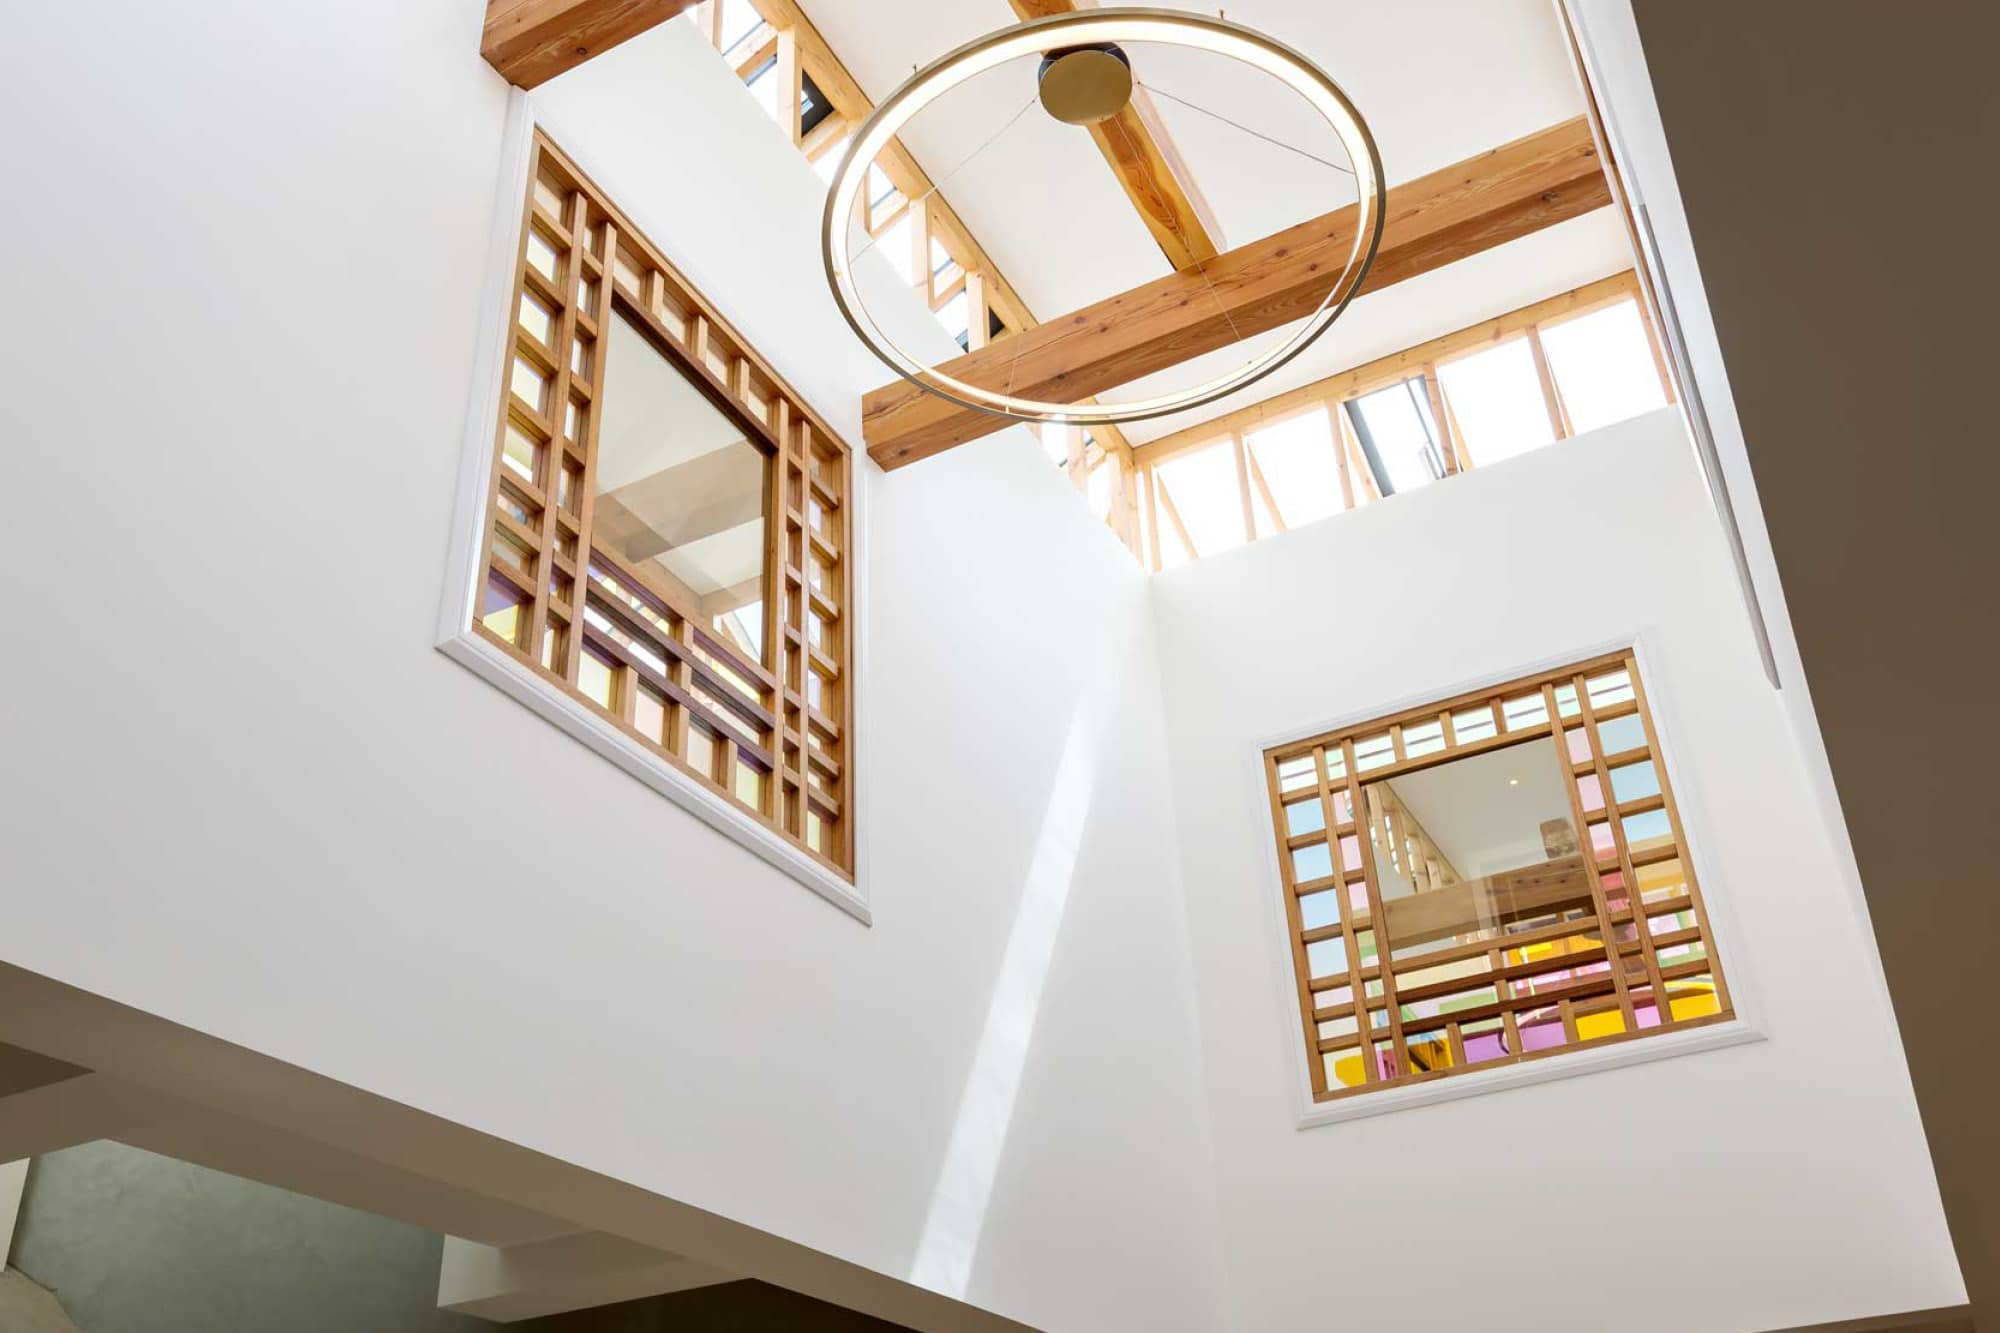 The modern atrium designed by Studio Henley at Harford Manor